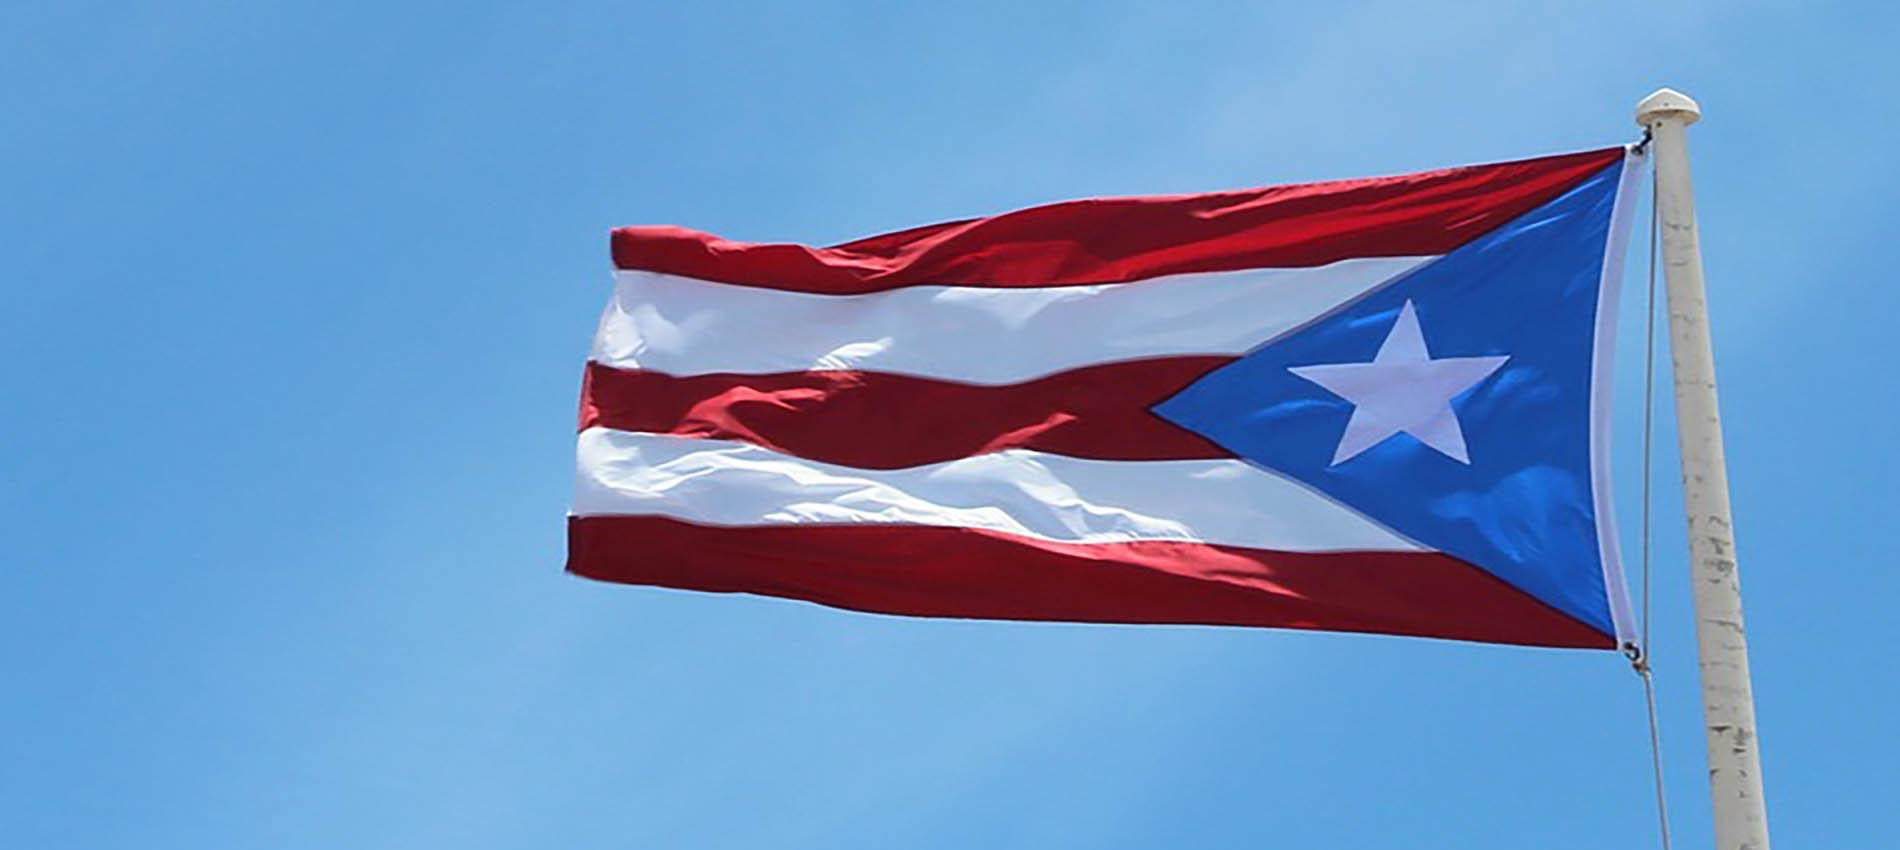 Puerto Rican flag.